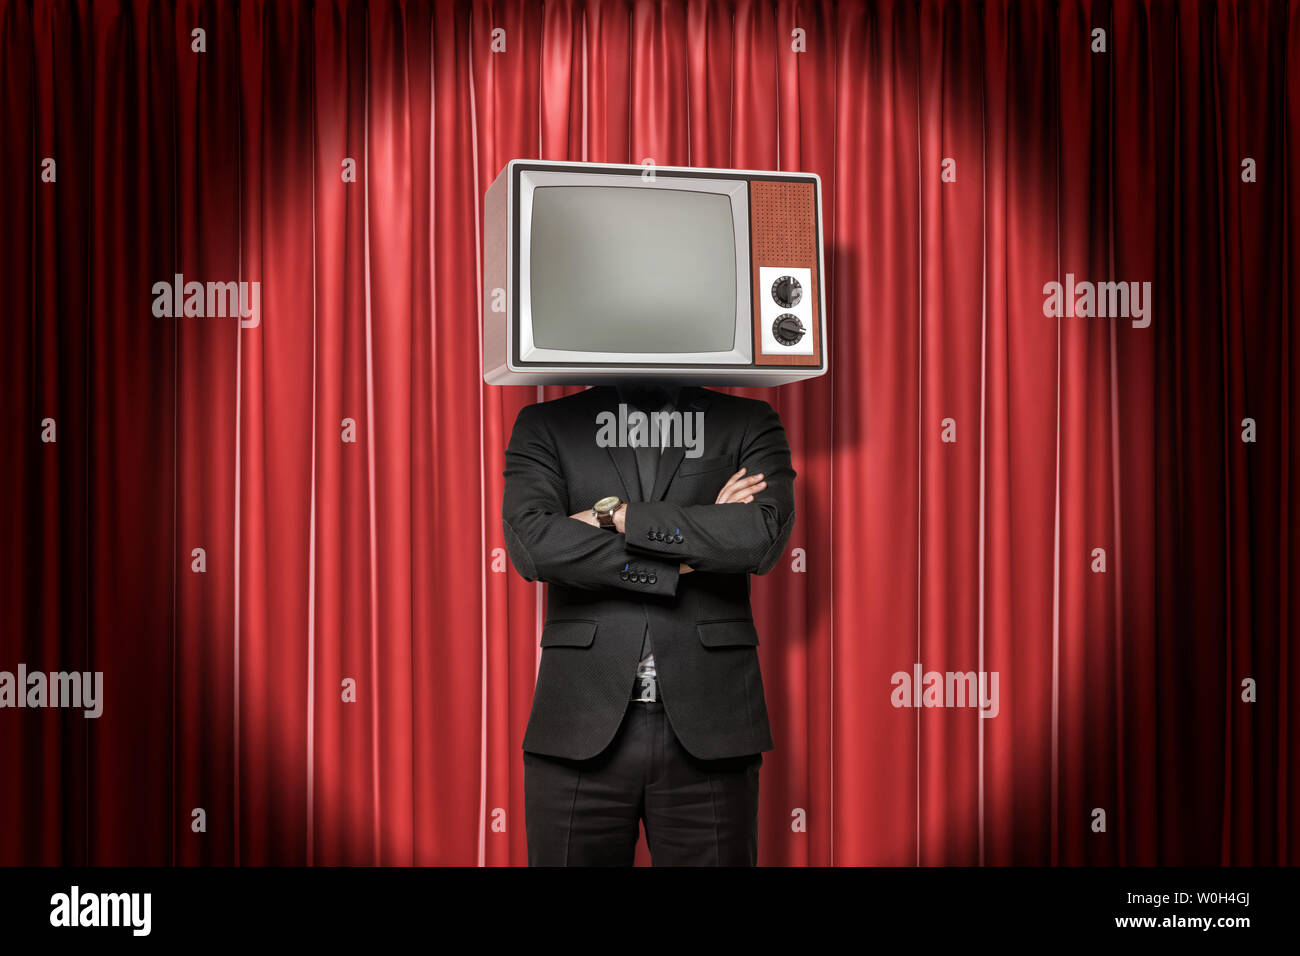 Front crop image of man in suit, with arms folded, and with TV set instead head, standing in spotlight at red stage curtain. Stock Photo